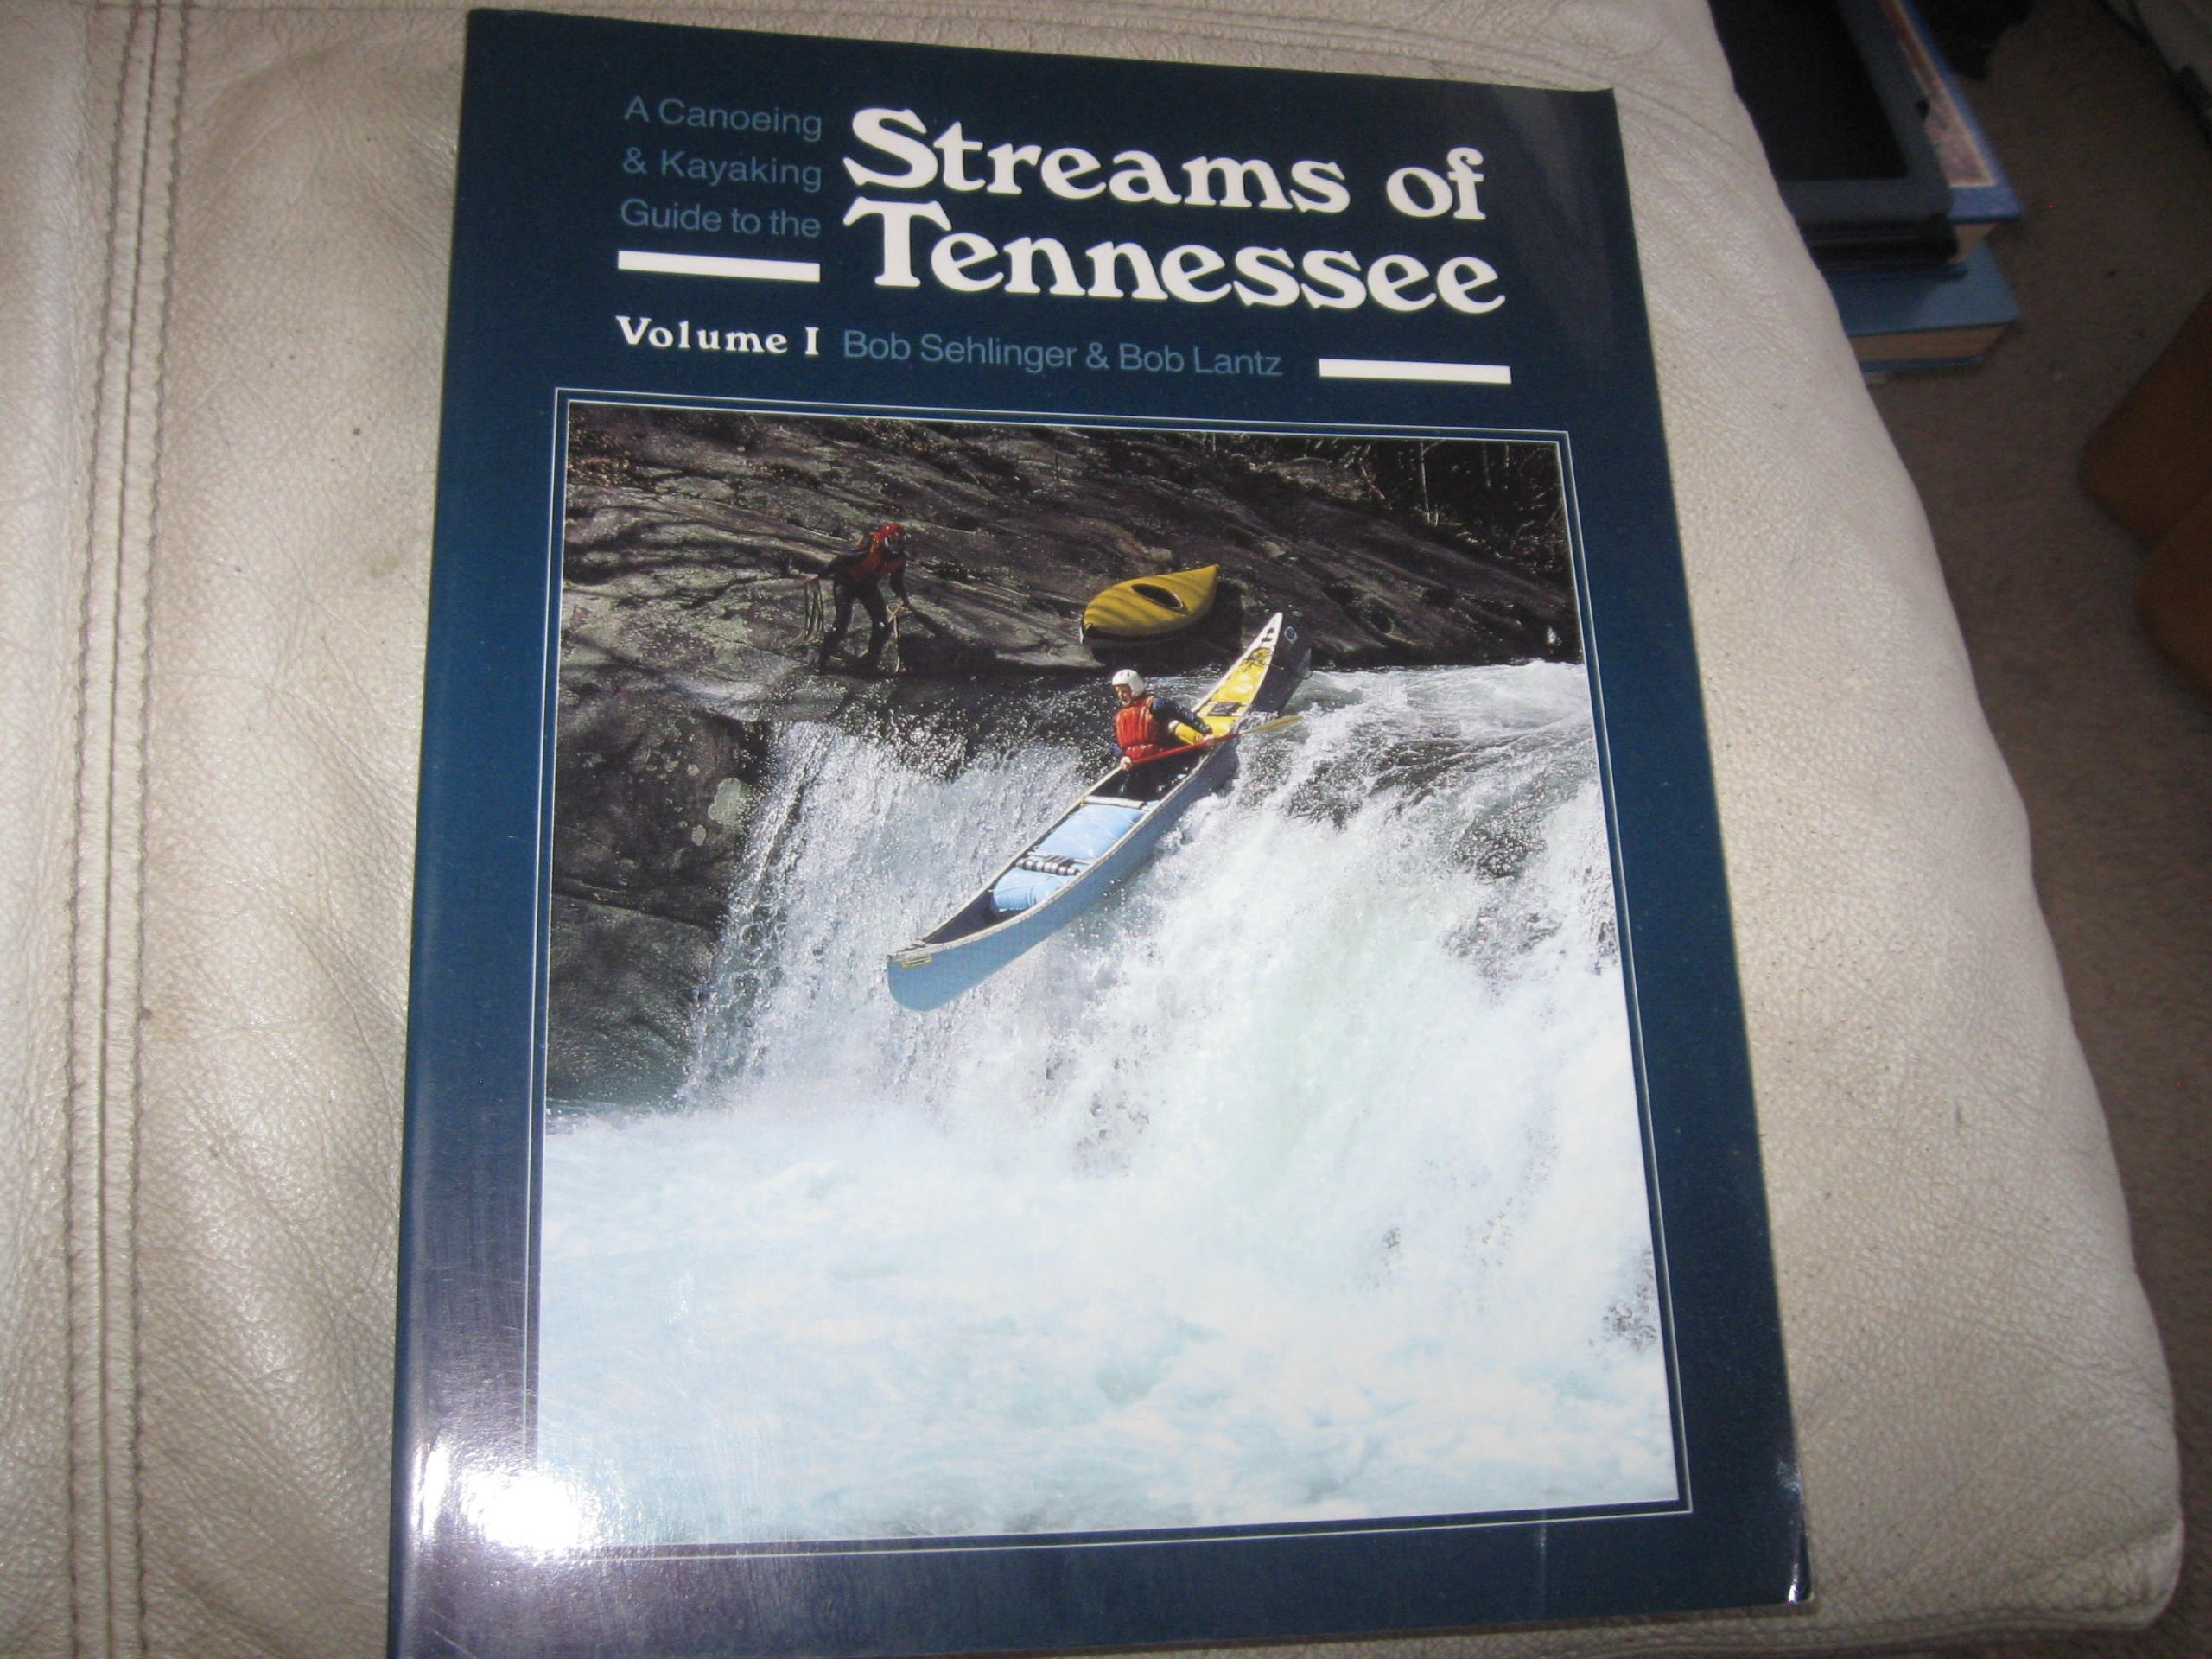 A Canoeing and Kayaking Guide to the Streams of Tennessee Volume 1 (Menasha Ridge Press Guide Books)